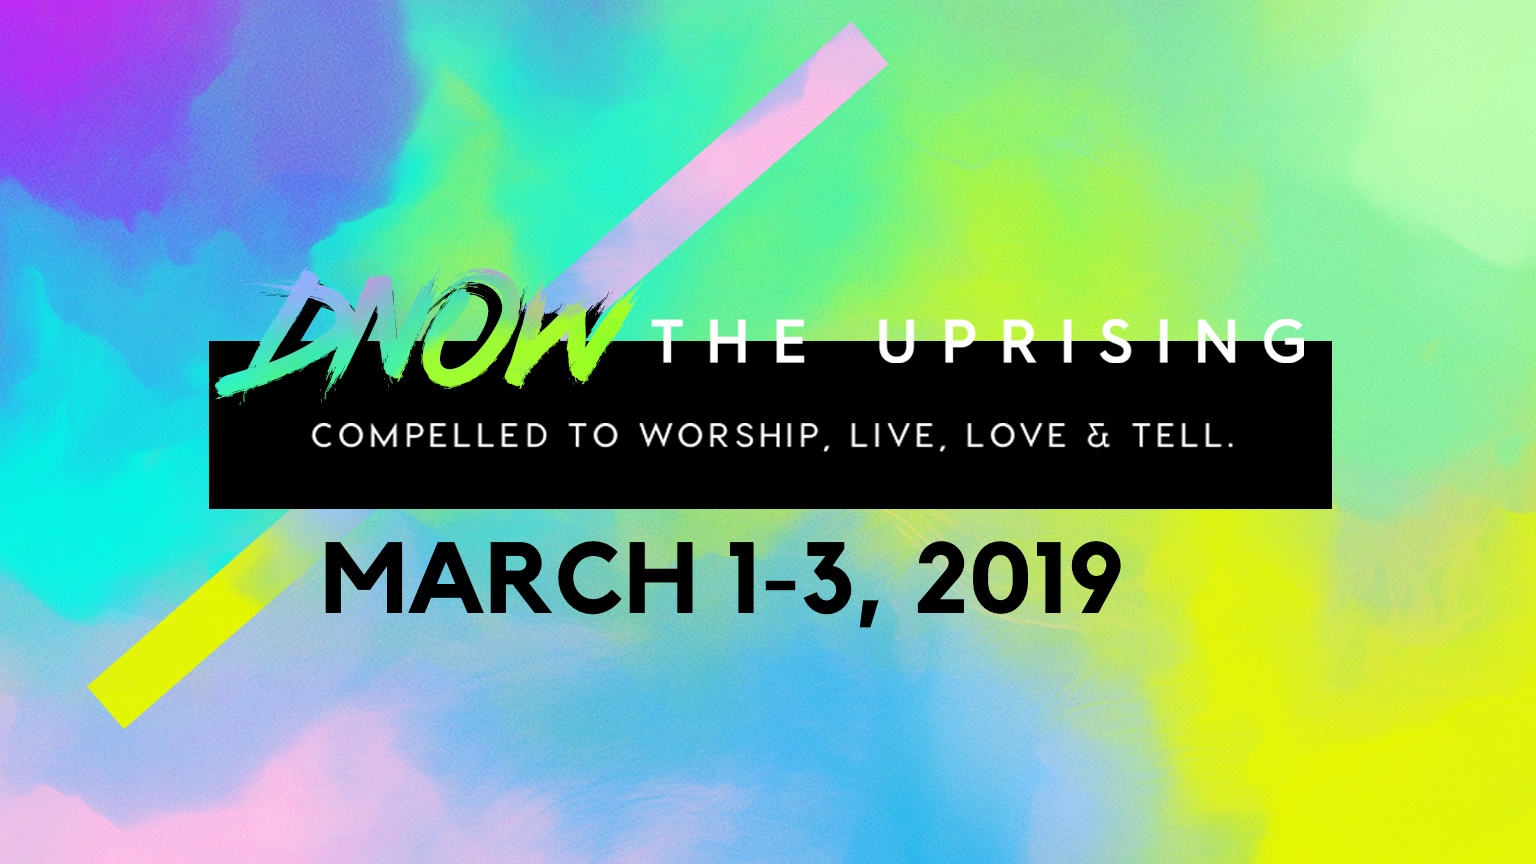 Dnow2019CoverPhoto.jpg